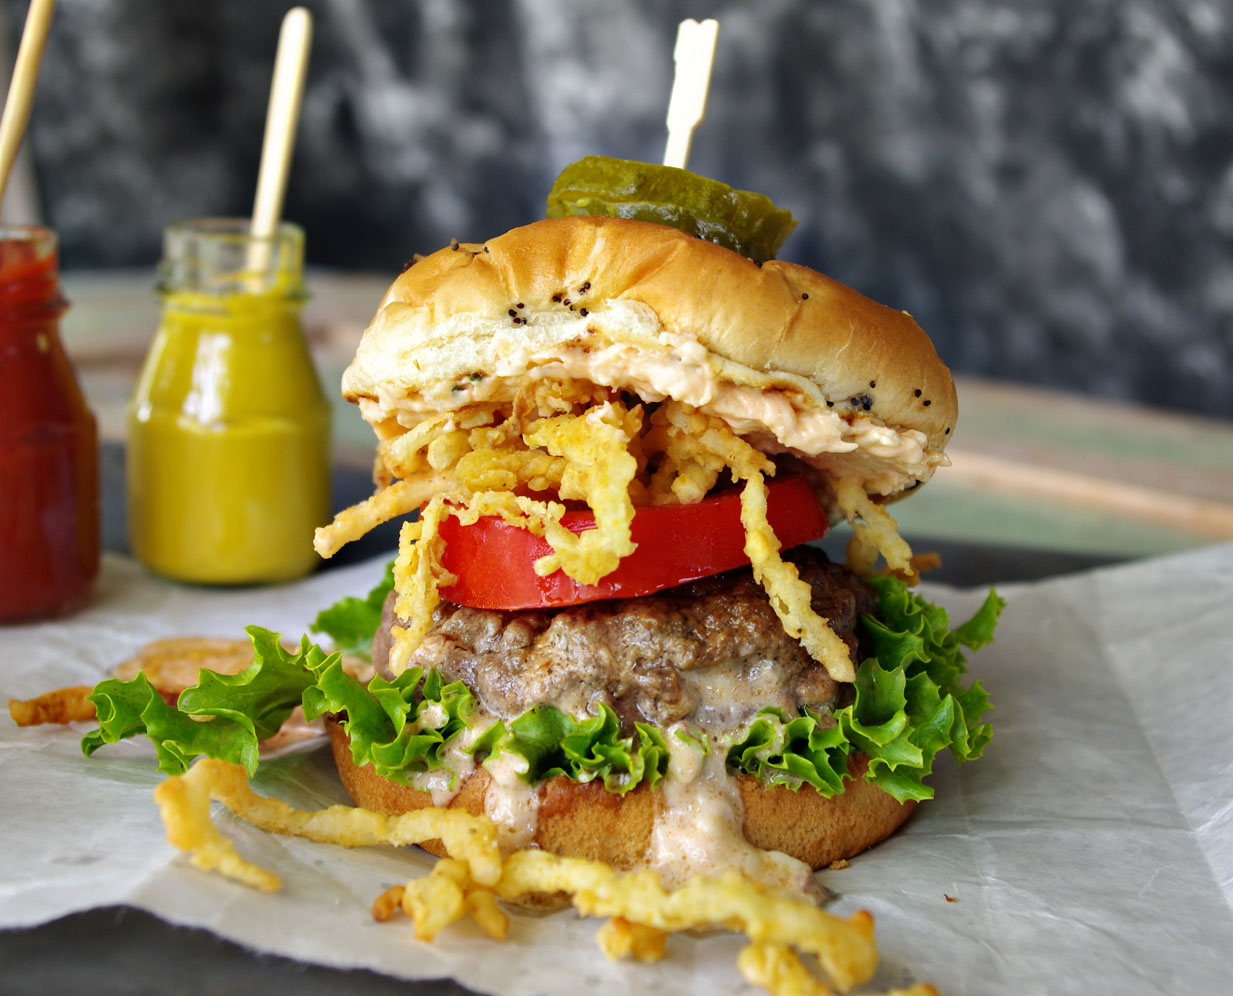 Jalapeno Pimento Cheese Stuffed Burger